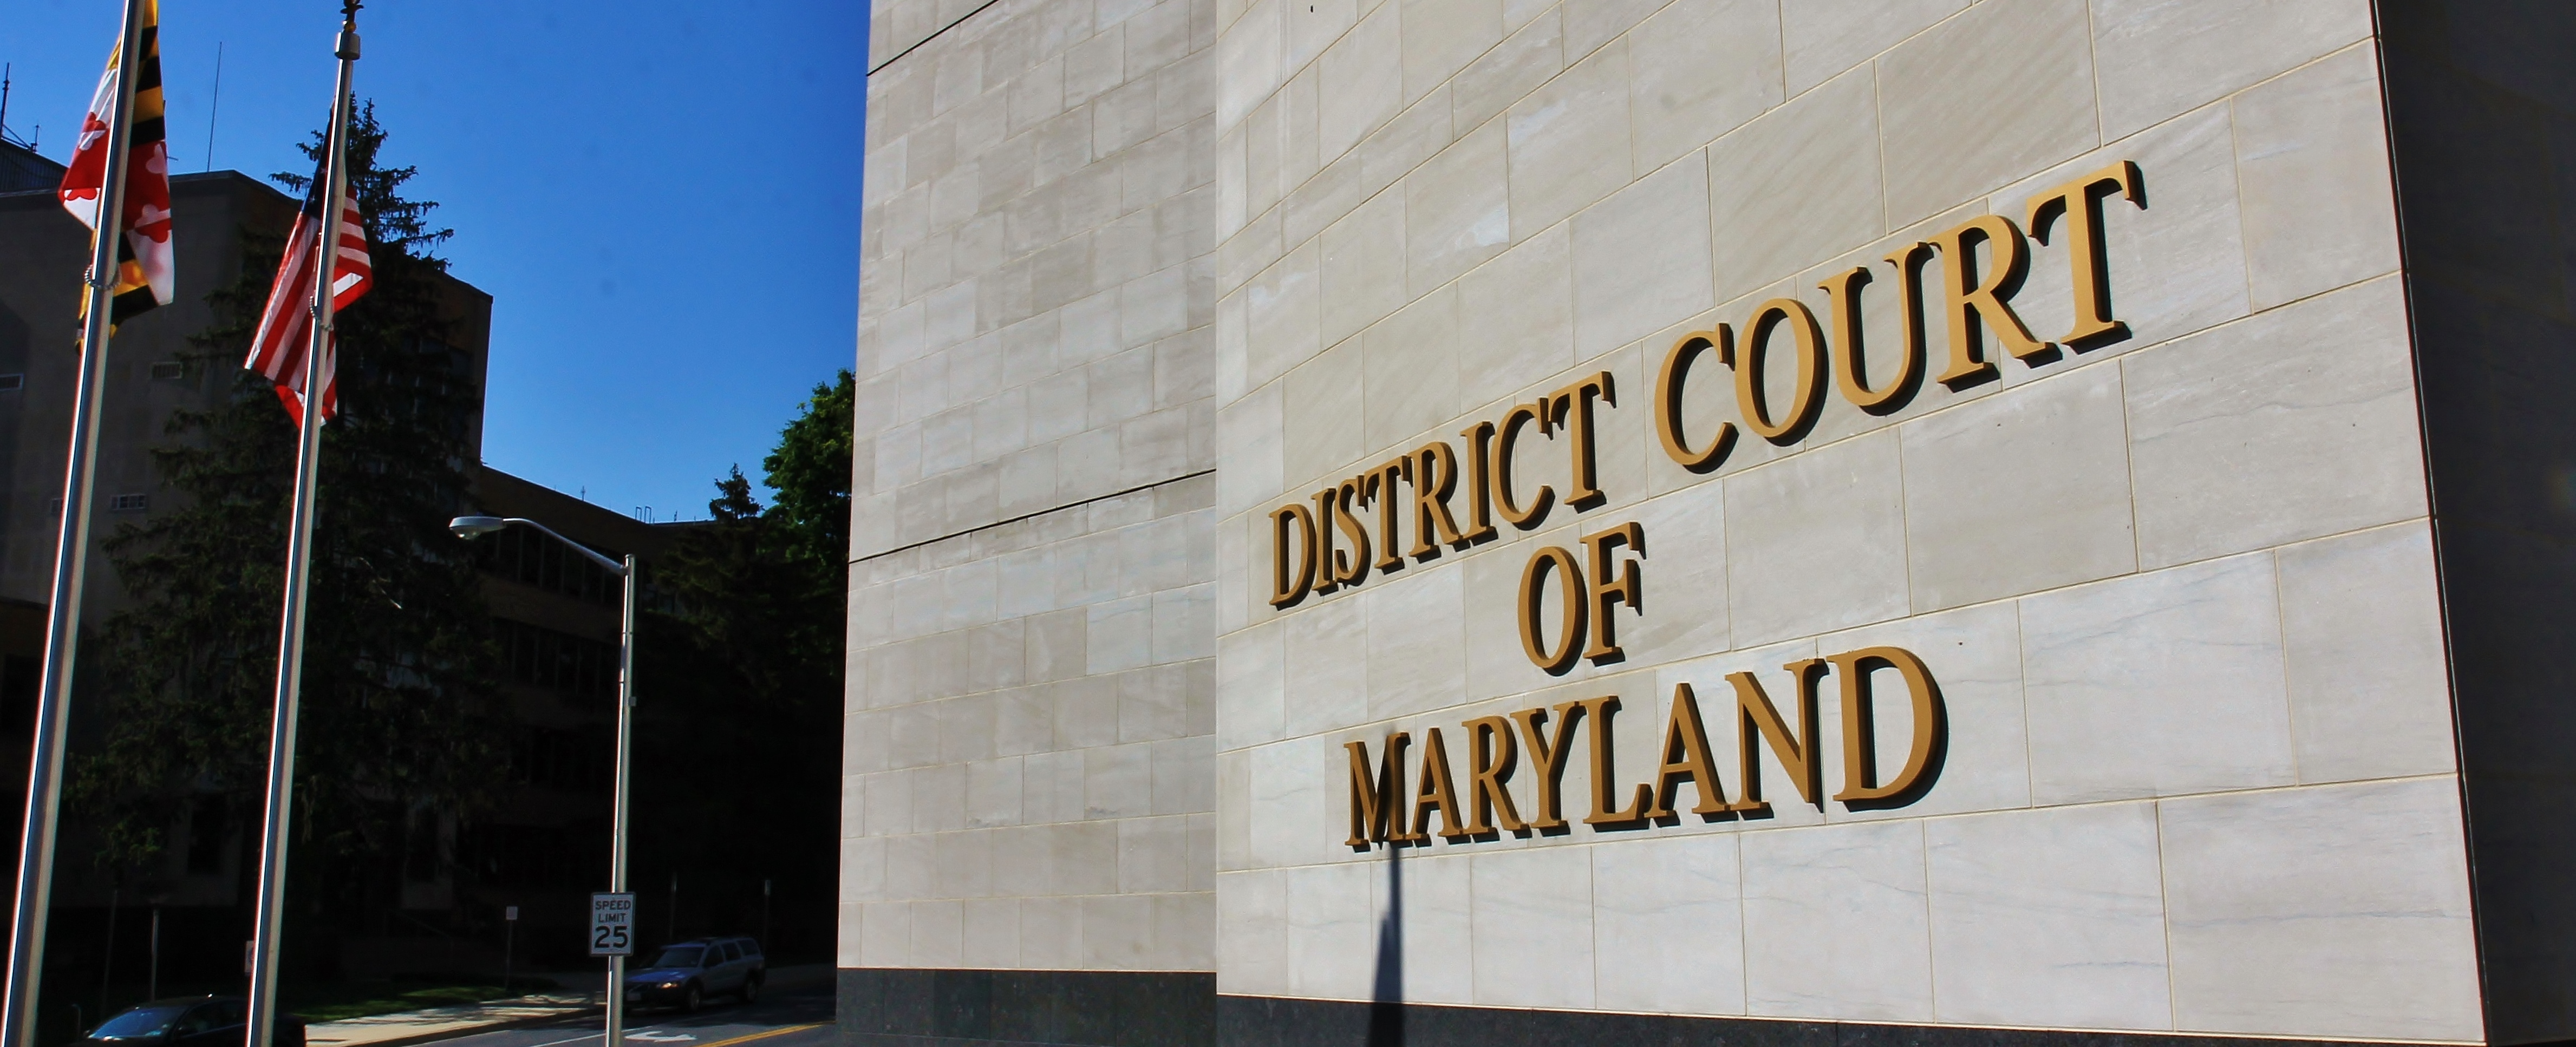 MD District Court.jpg